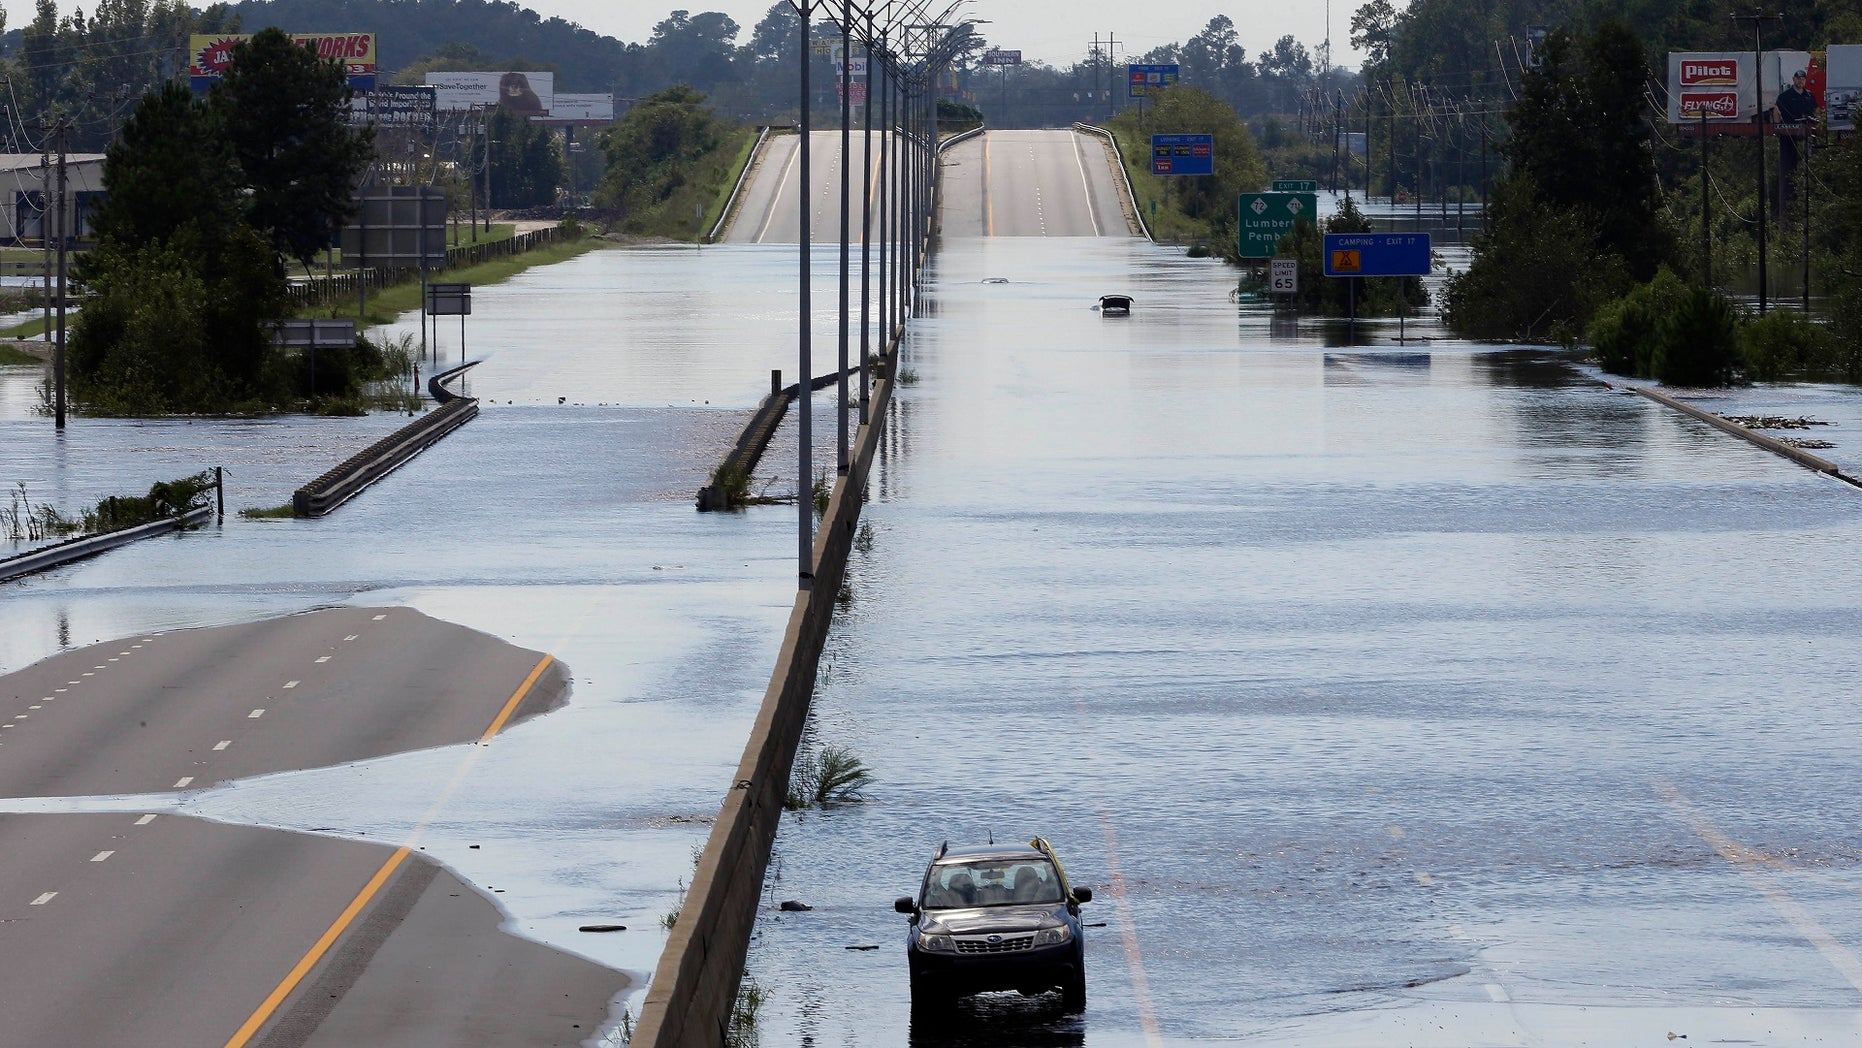 Navigation apps like Waze are trying to help motorists avoid hurricane flooding, but local authorities say people shouldn't rely on them